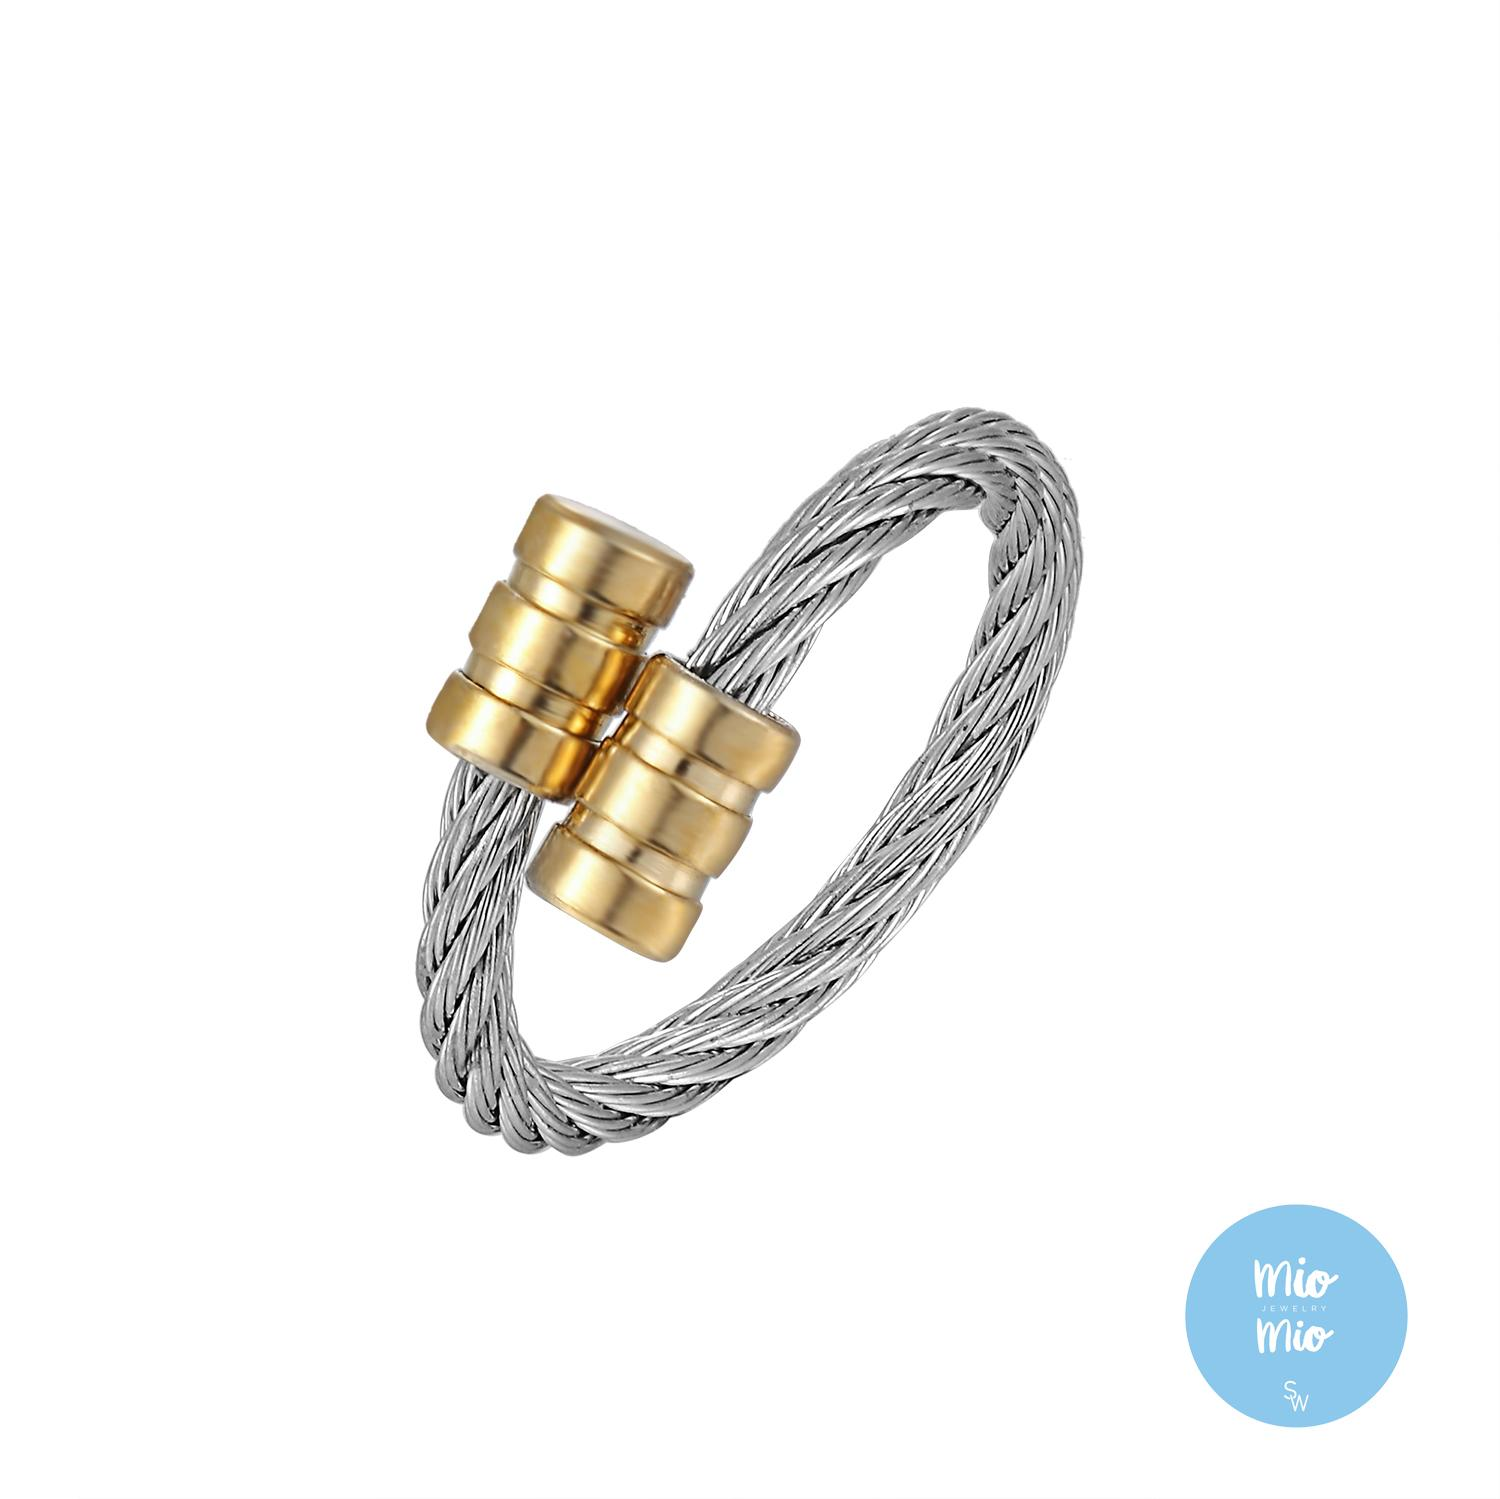 Silverworks X3982 Twisted Cable Ring With Gold Plated End